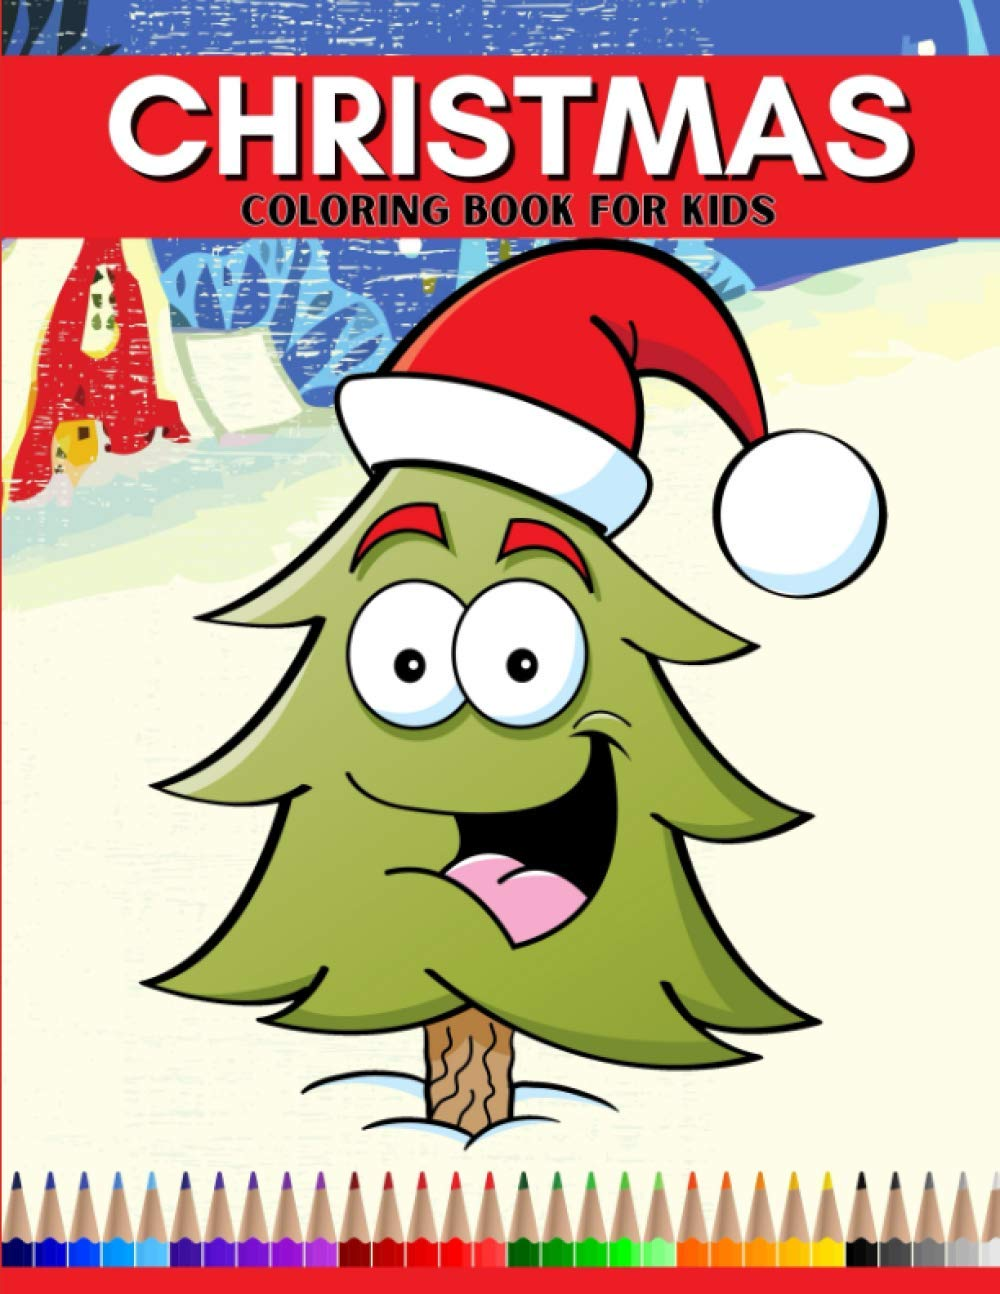 Christmas Coloring Pages For Kids Fun Holiday Coloring Book For Children Ages 4 8 Christmas Tree Laughing Johnny B 9798558922363 Amazon Com Books